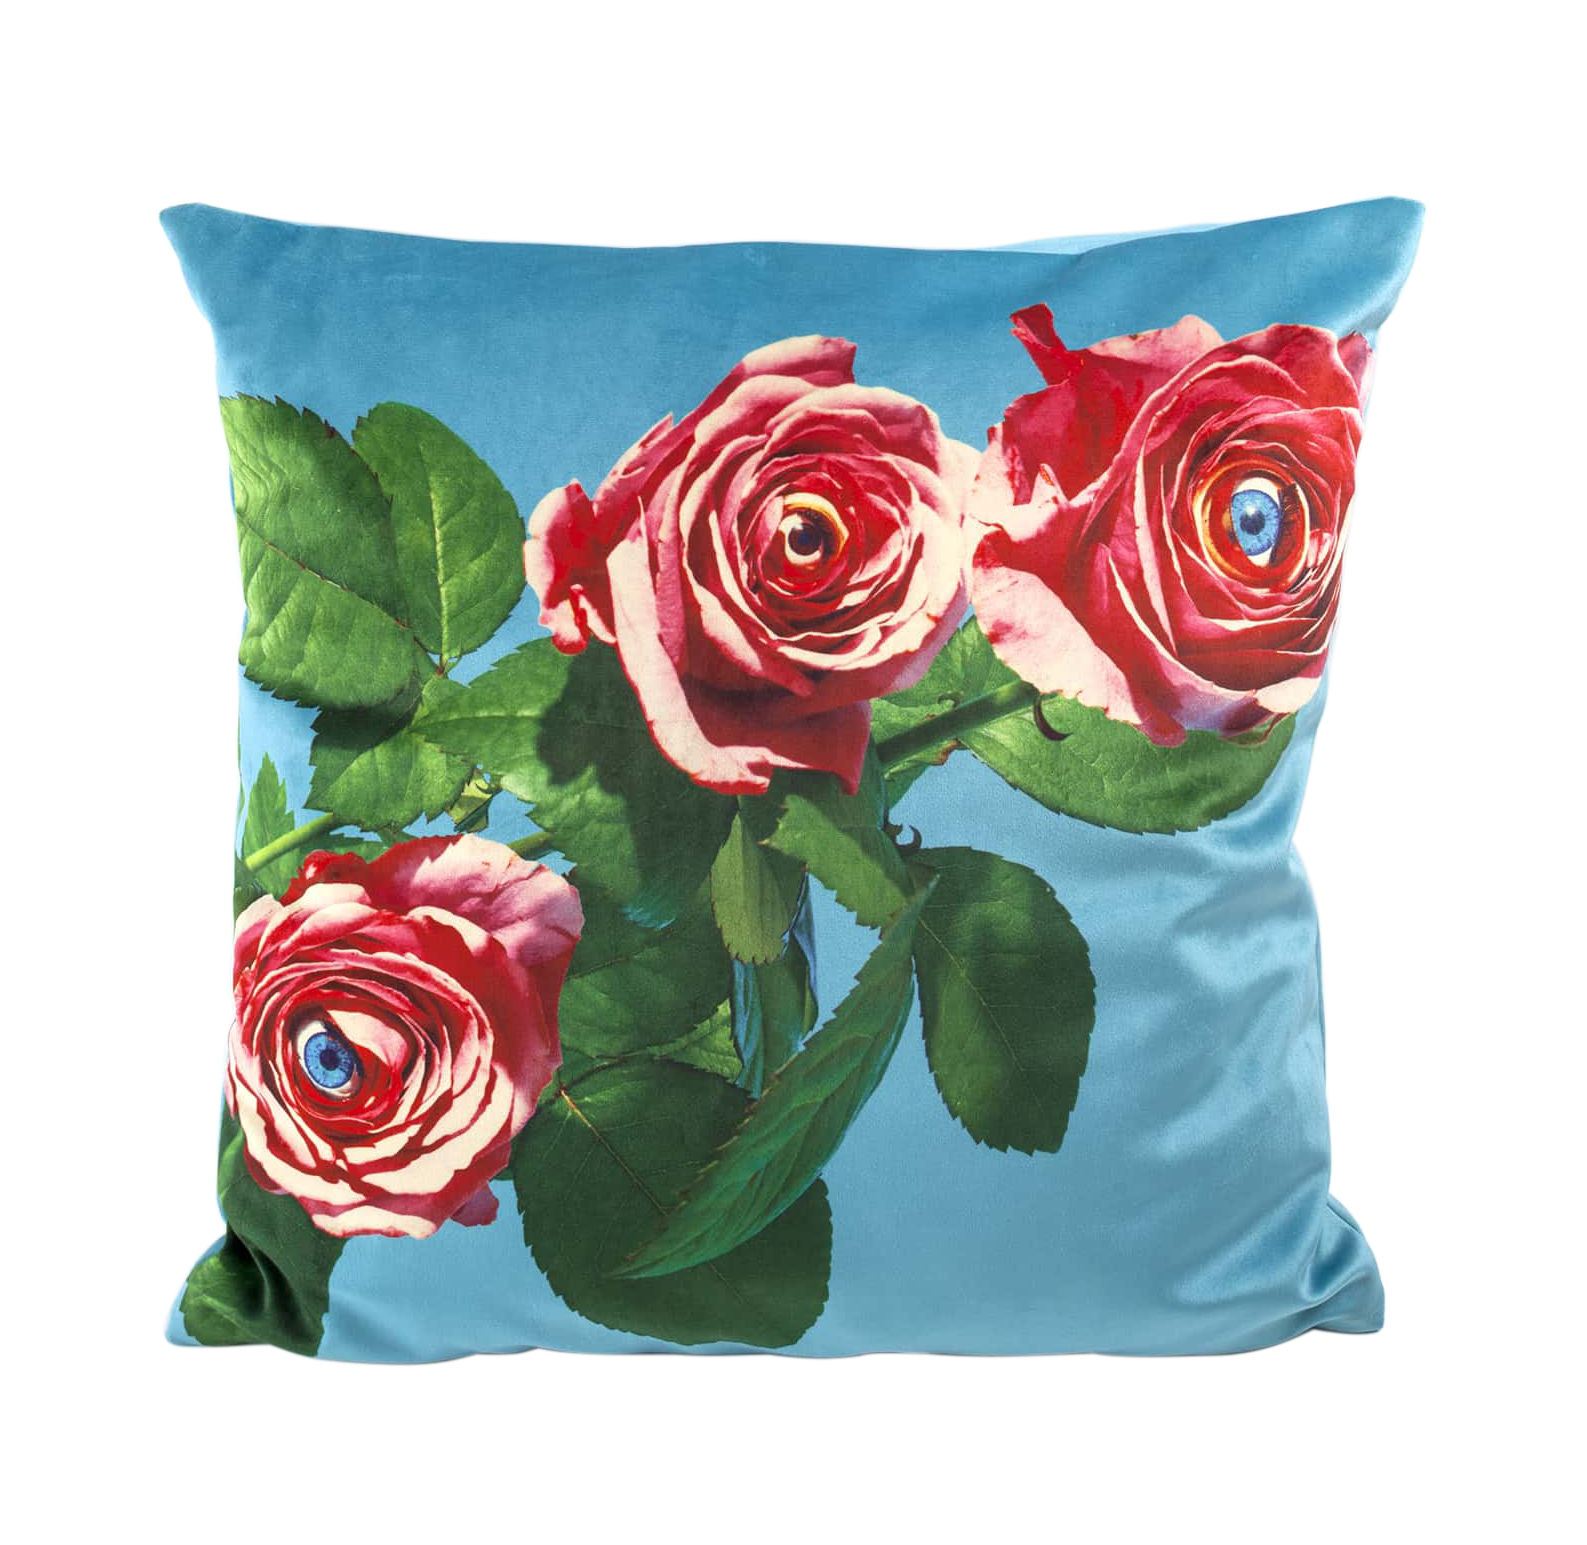 Decoration - Cushions & Poufs - Toiletpaper Cushion - / Roses - 50 x 50 cm by Seletti - Roses / Turquoise - Feathers, Polyester fabric